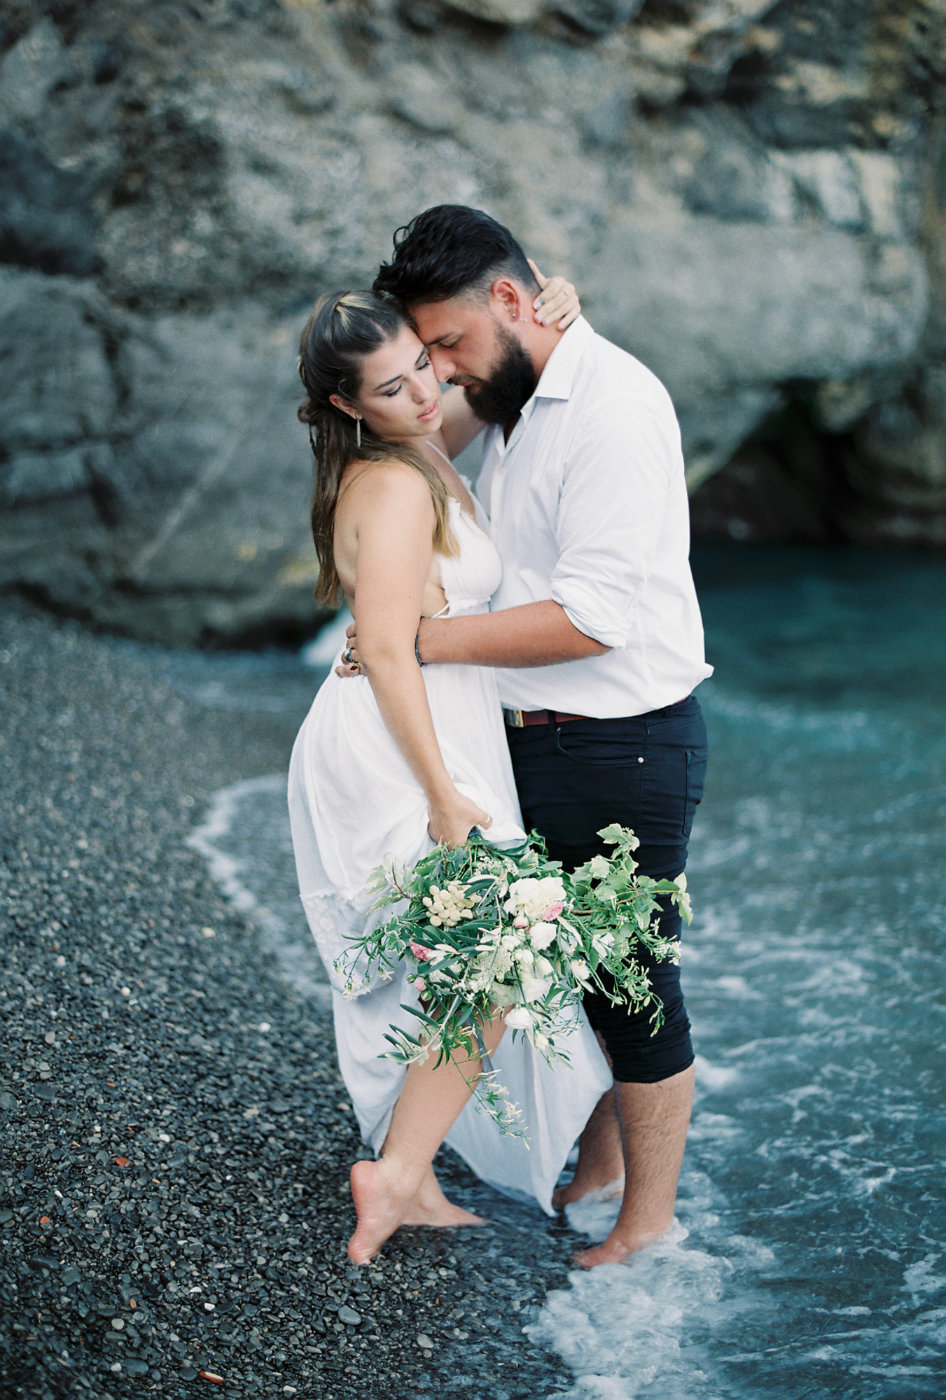 positano_italy_elopement_melanie_gabrielle_photography_087